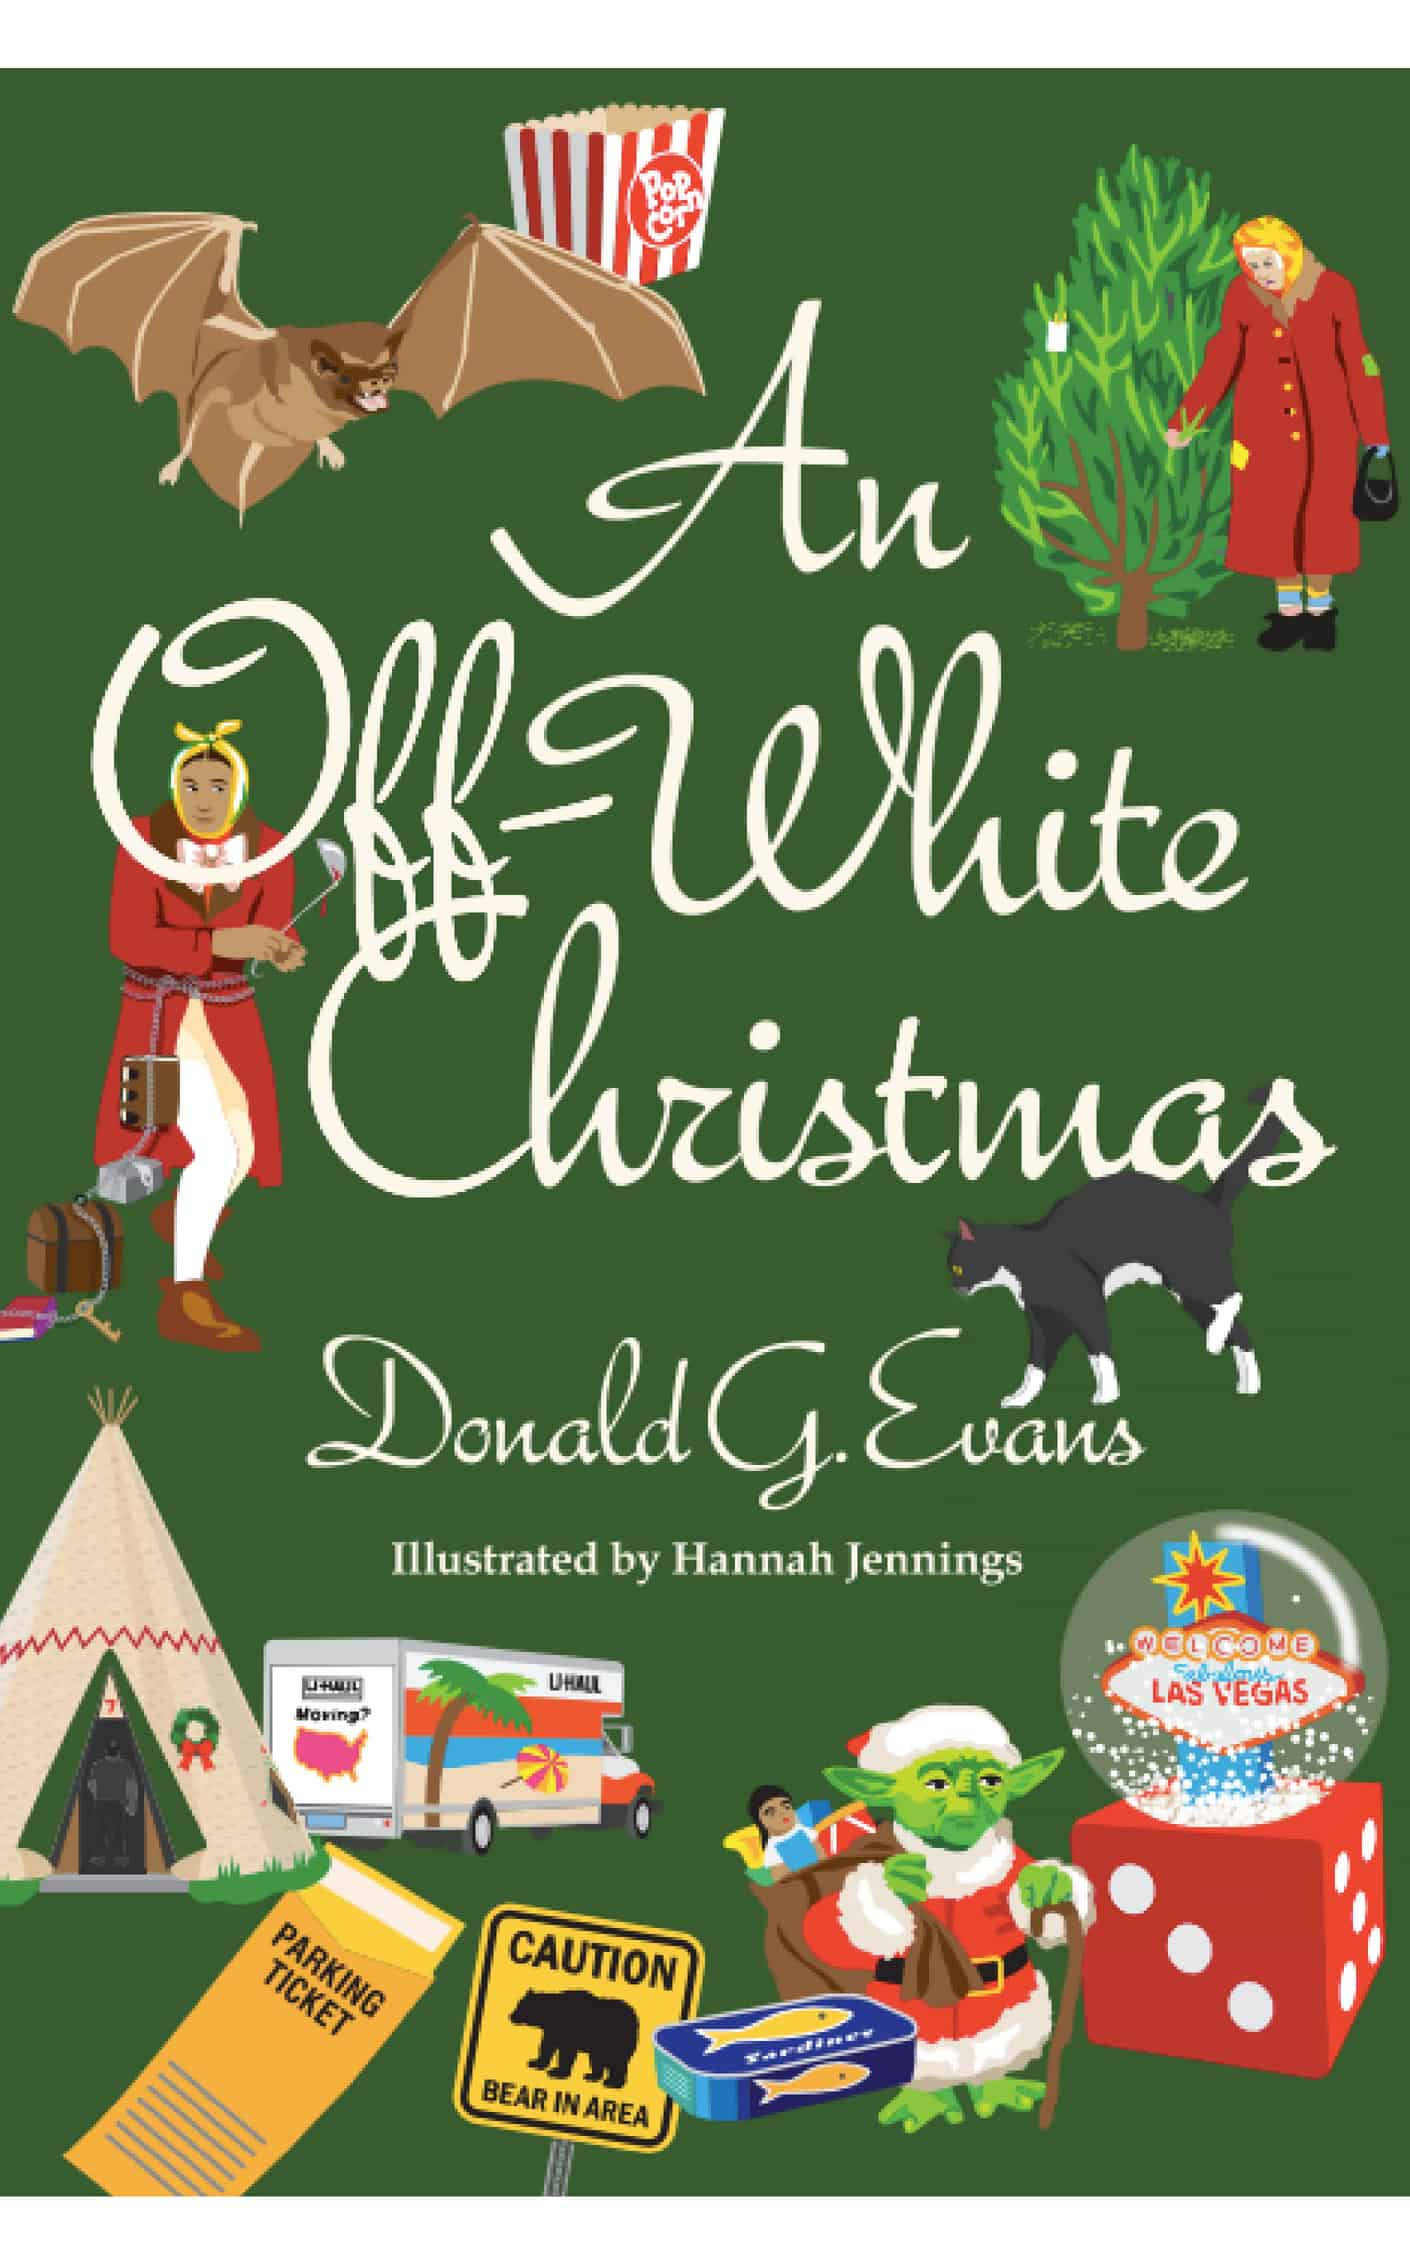 Eckhartz Press | Chicago | An Off White Christmas Paperback